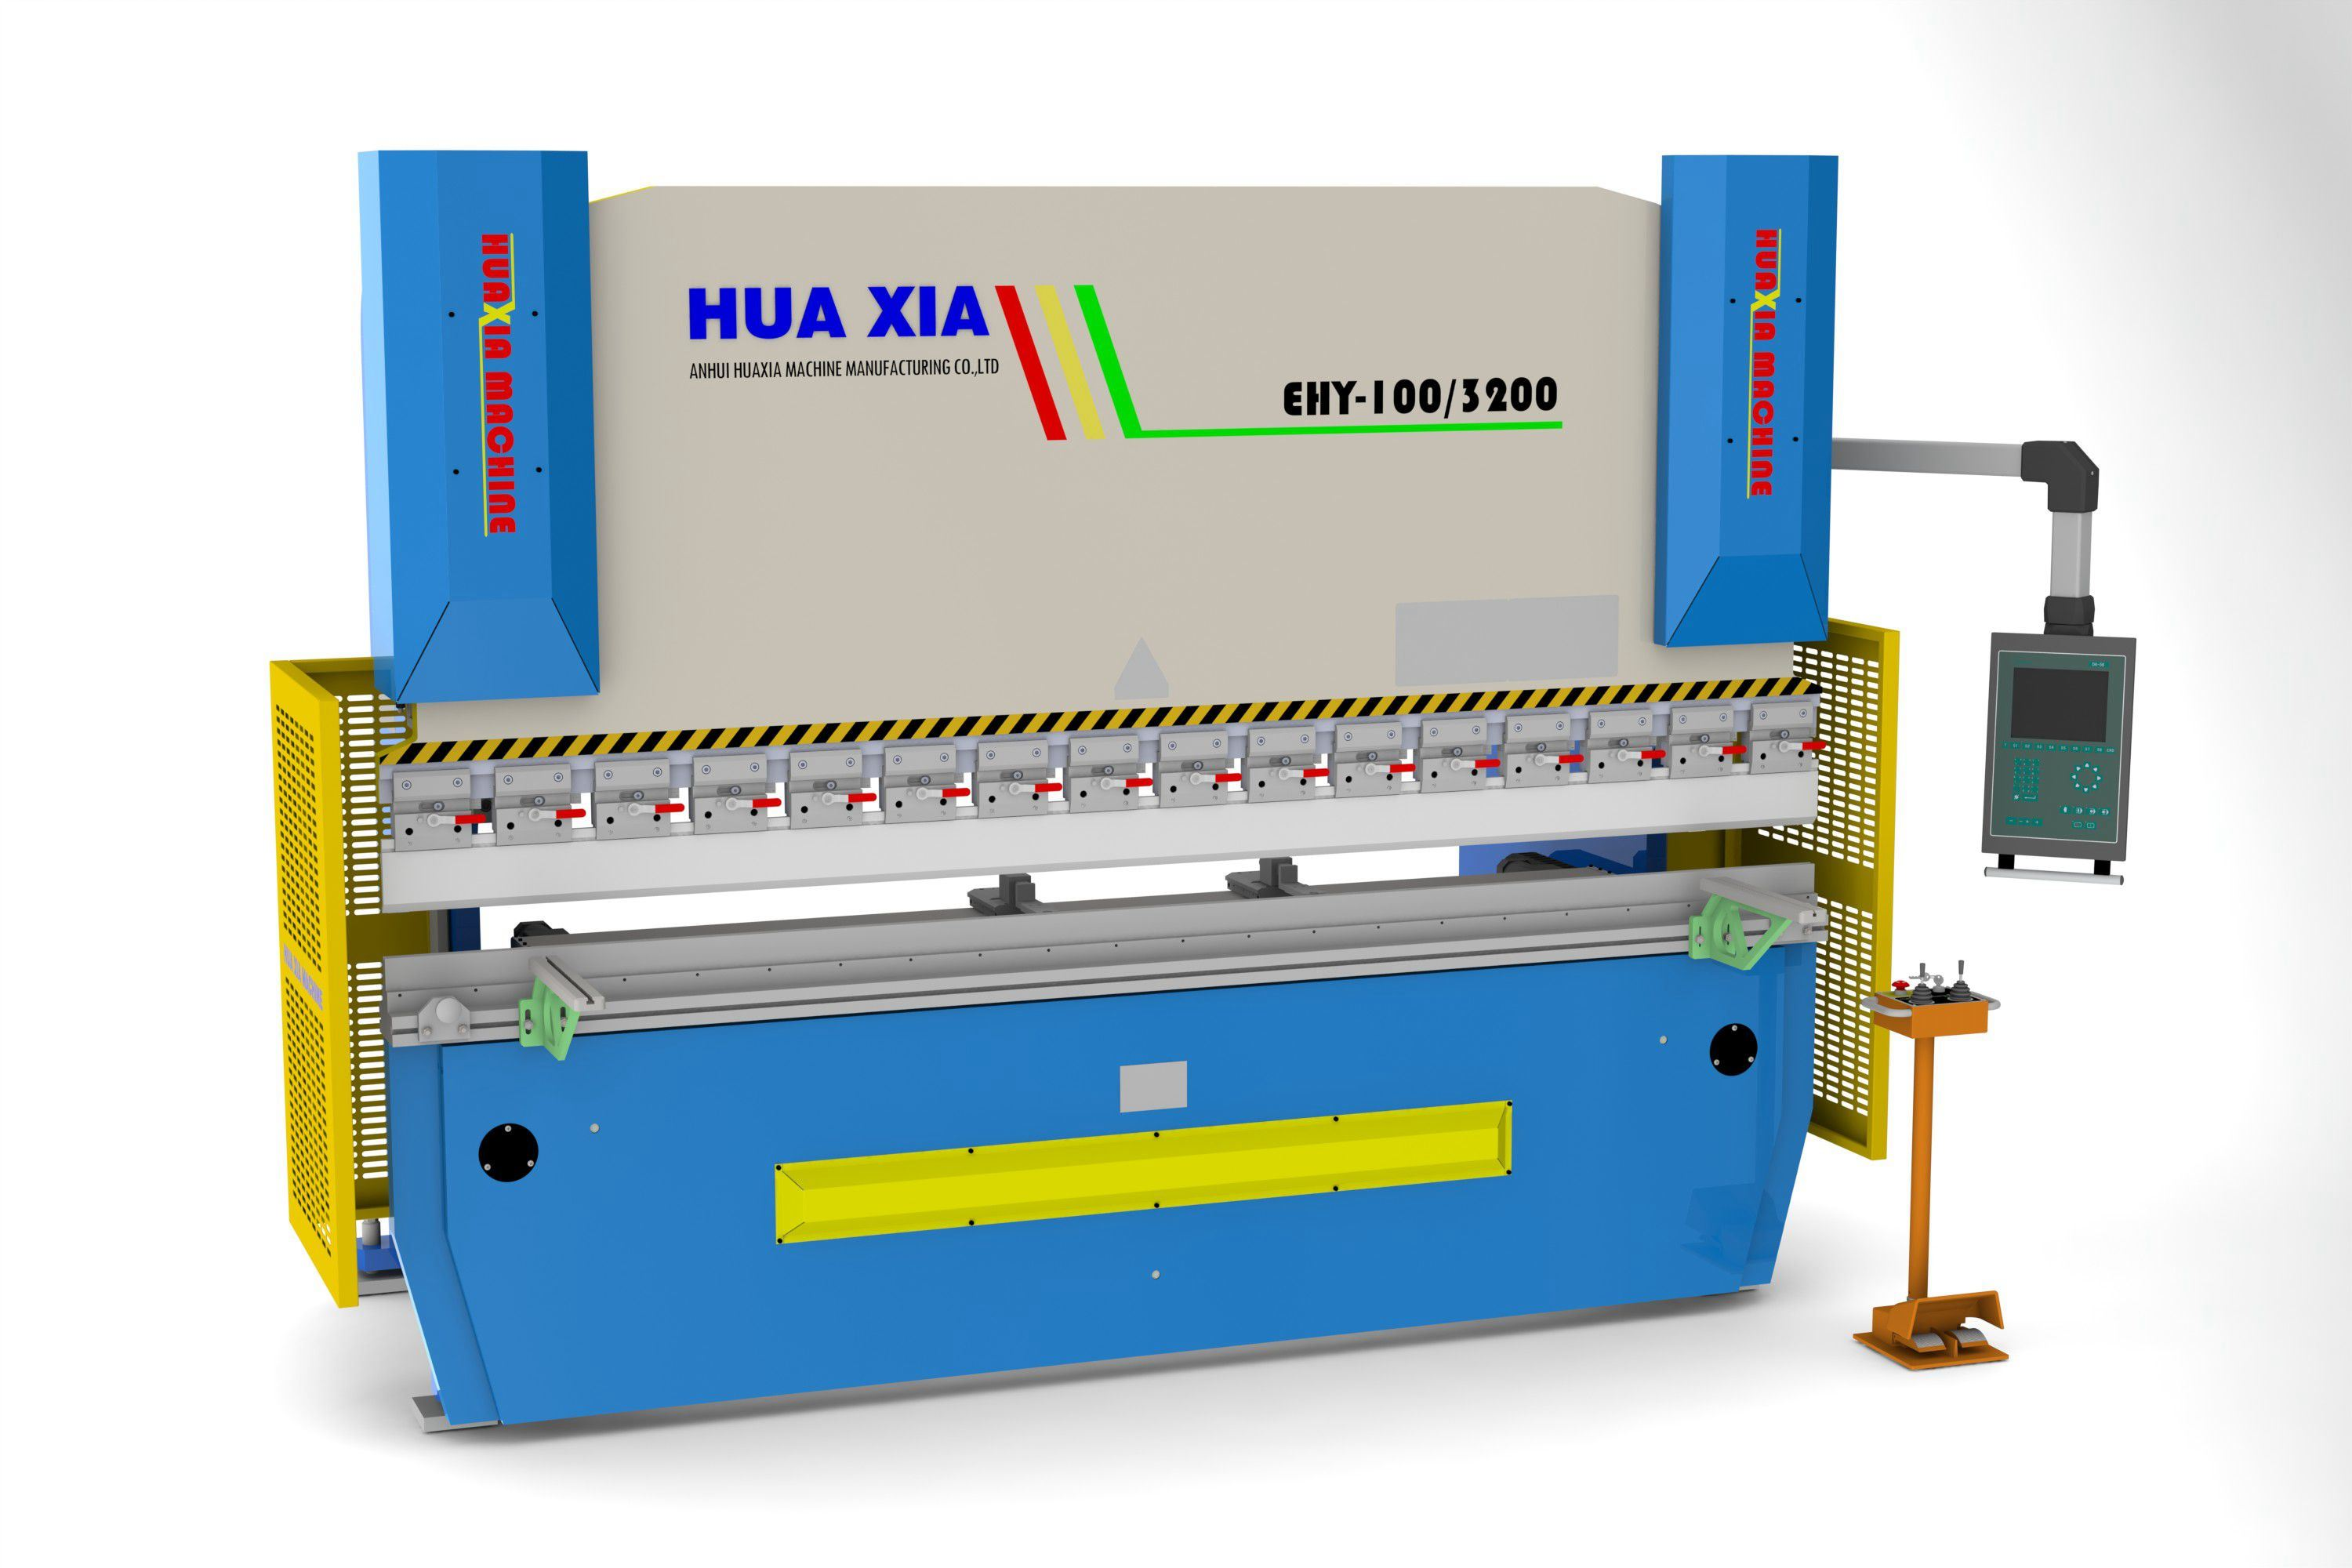 Wd67k CNC Control System Press Brake, CNC Machine Made in China Famous Press Brake